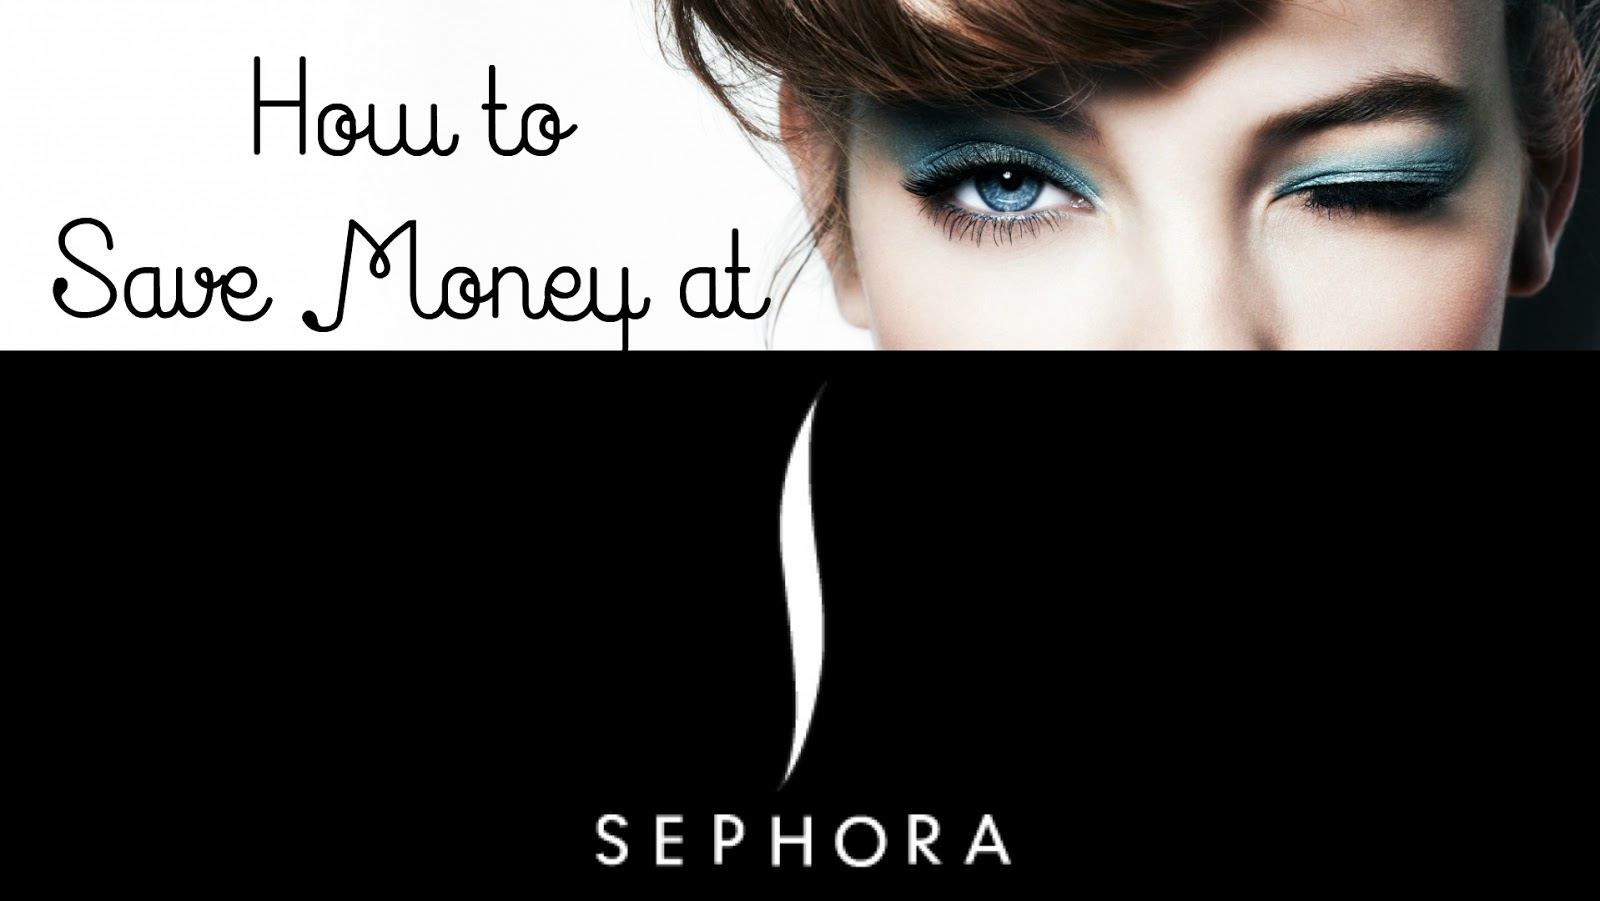 Aug 21, · Purchasing discounted gift cards and using them at Sephora can save you cash on everything you buy with the cards, and that's a thing of beauty! Recently, the discounted gift card marketplace alltechlife.ml offered Sephora gift cards for up to percent off their face value.